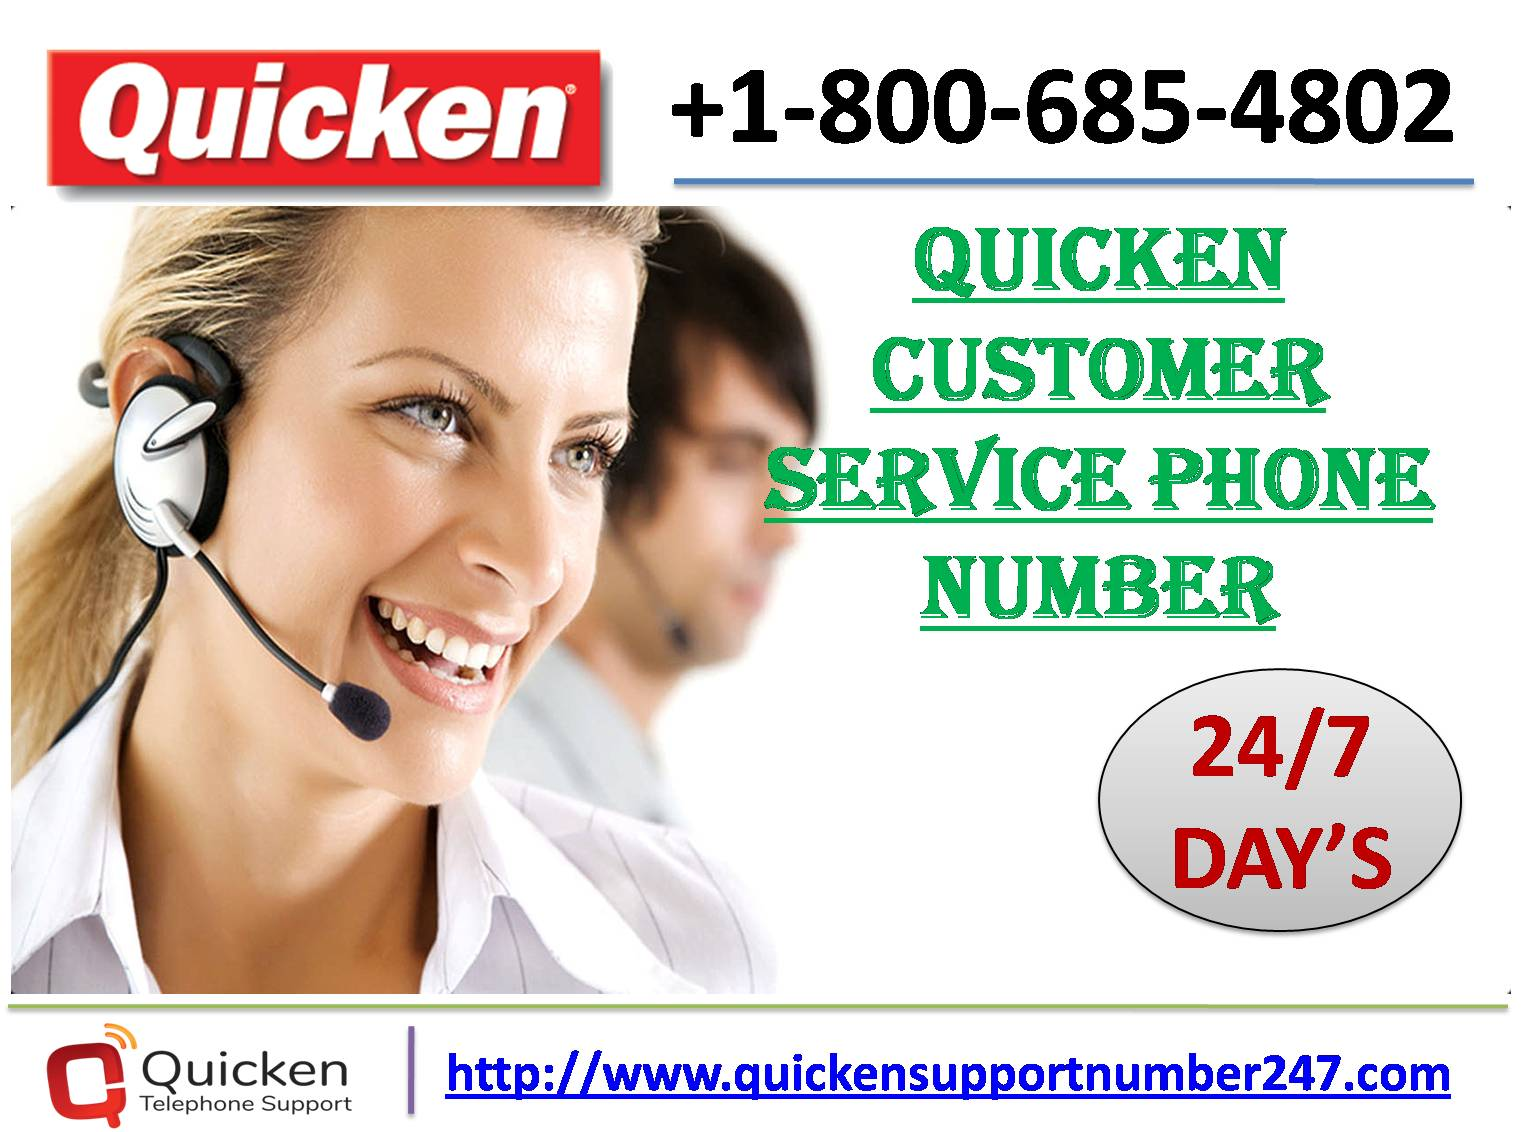 chatting with quicken customer service +1-800-685-4802